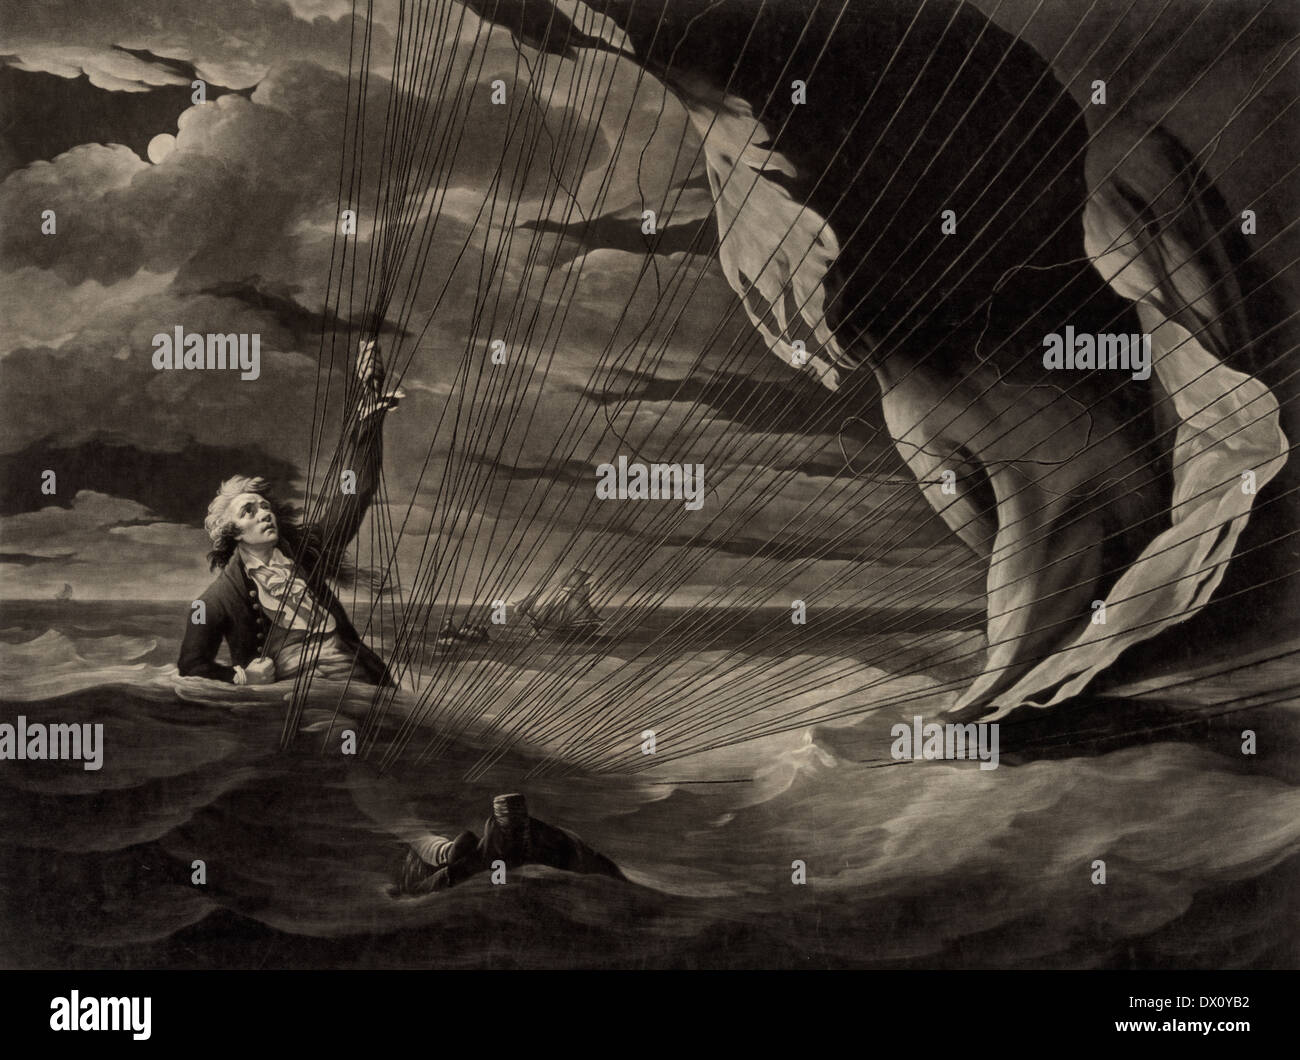 The perilous situation of Major Mony [Money], when he fell into the sea with his balloon on the 23rd of July, 1785, off the coast of Yarmouth ... - Stock Image